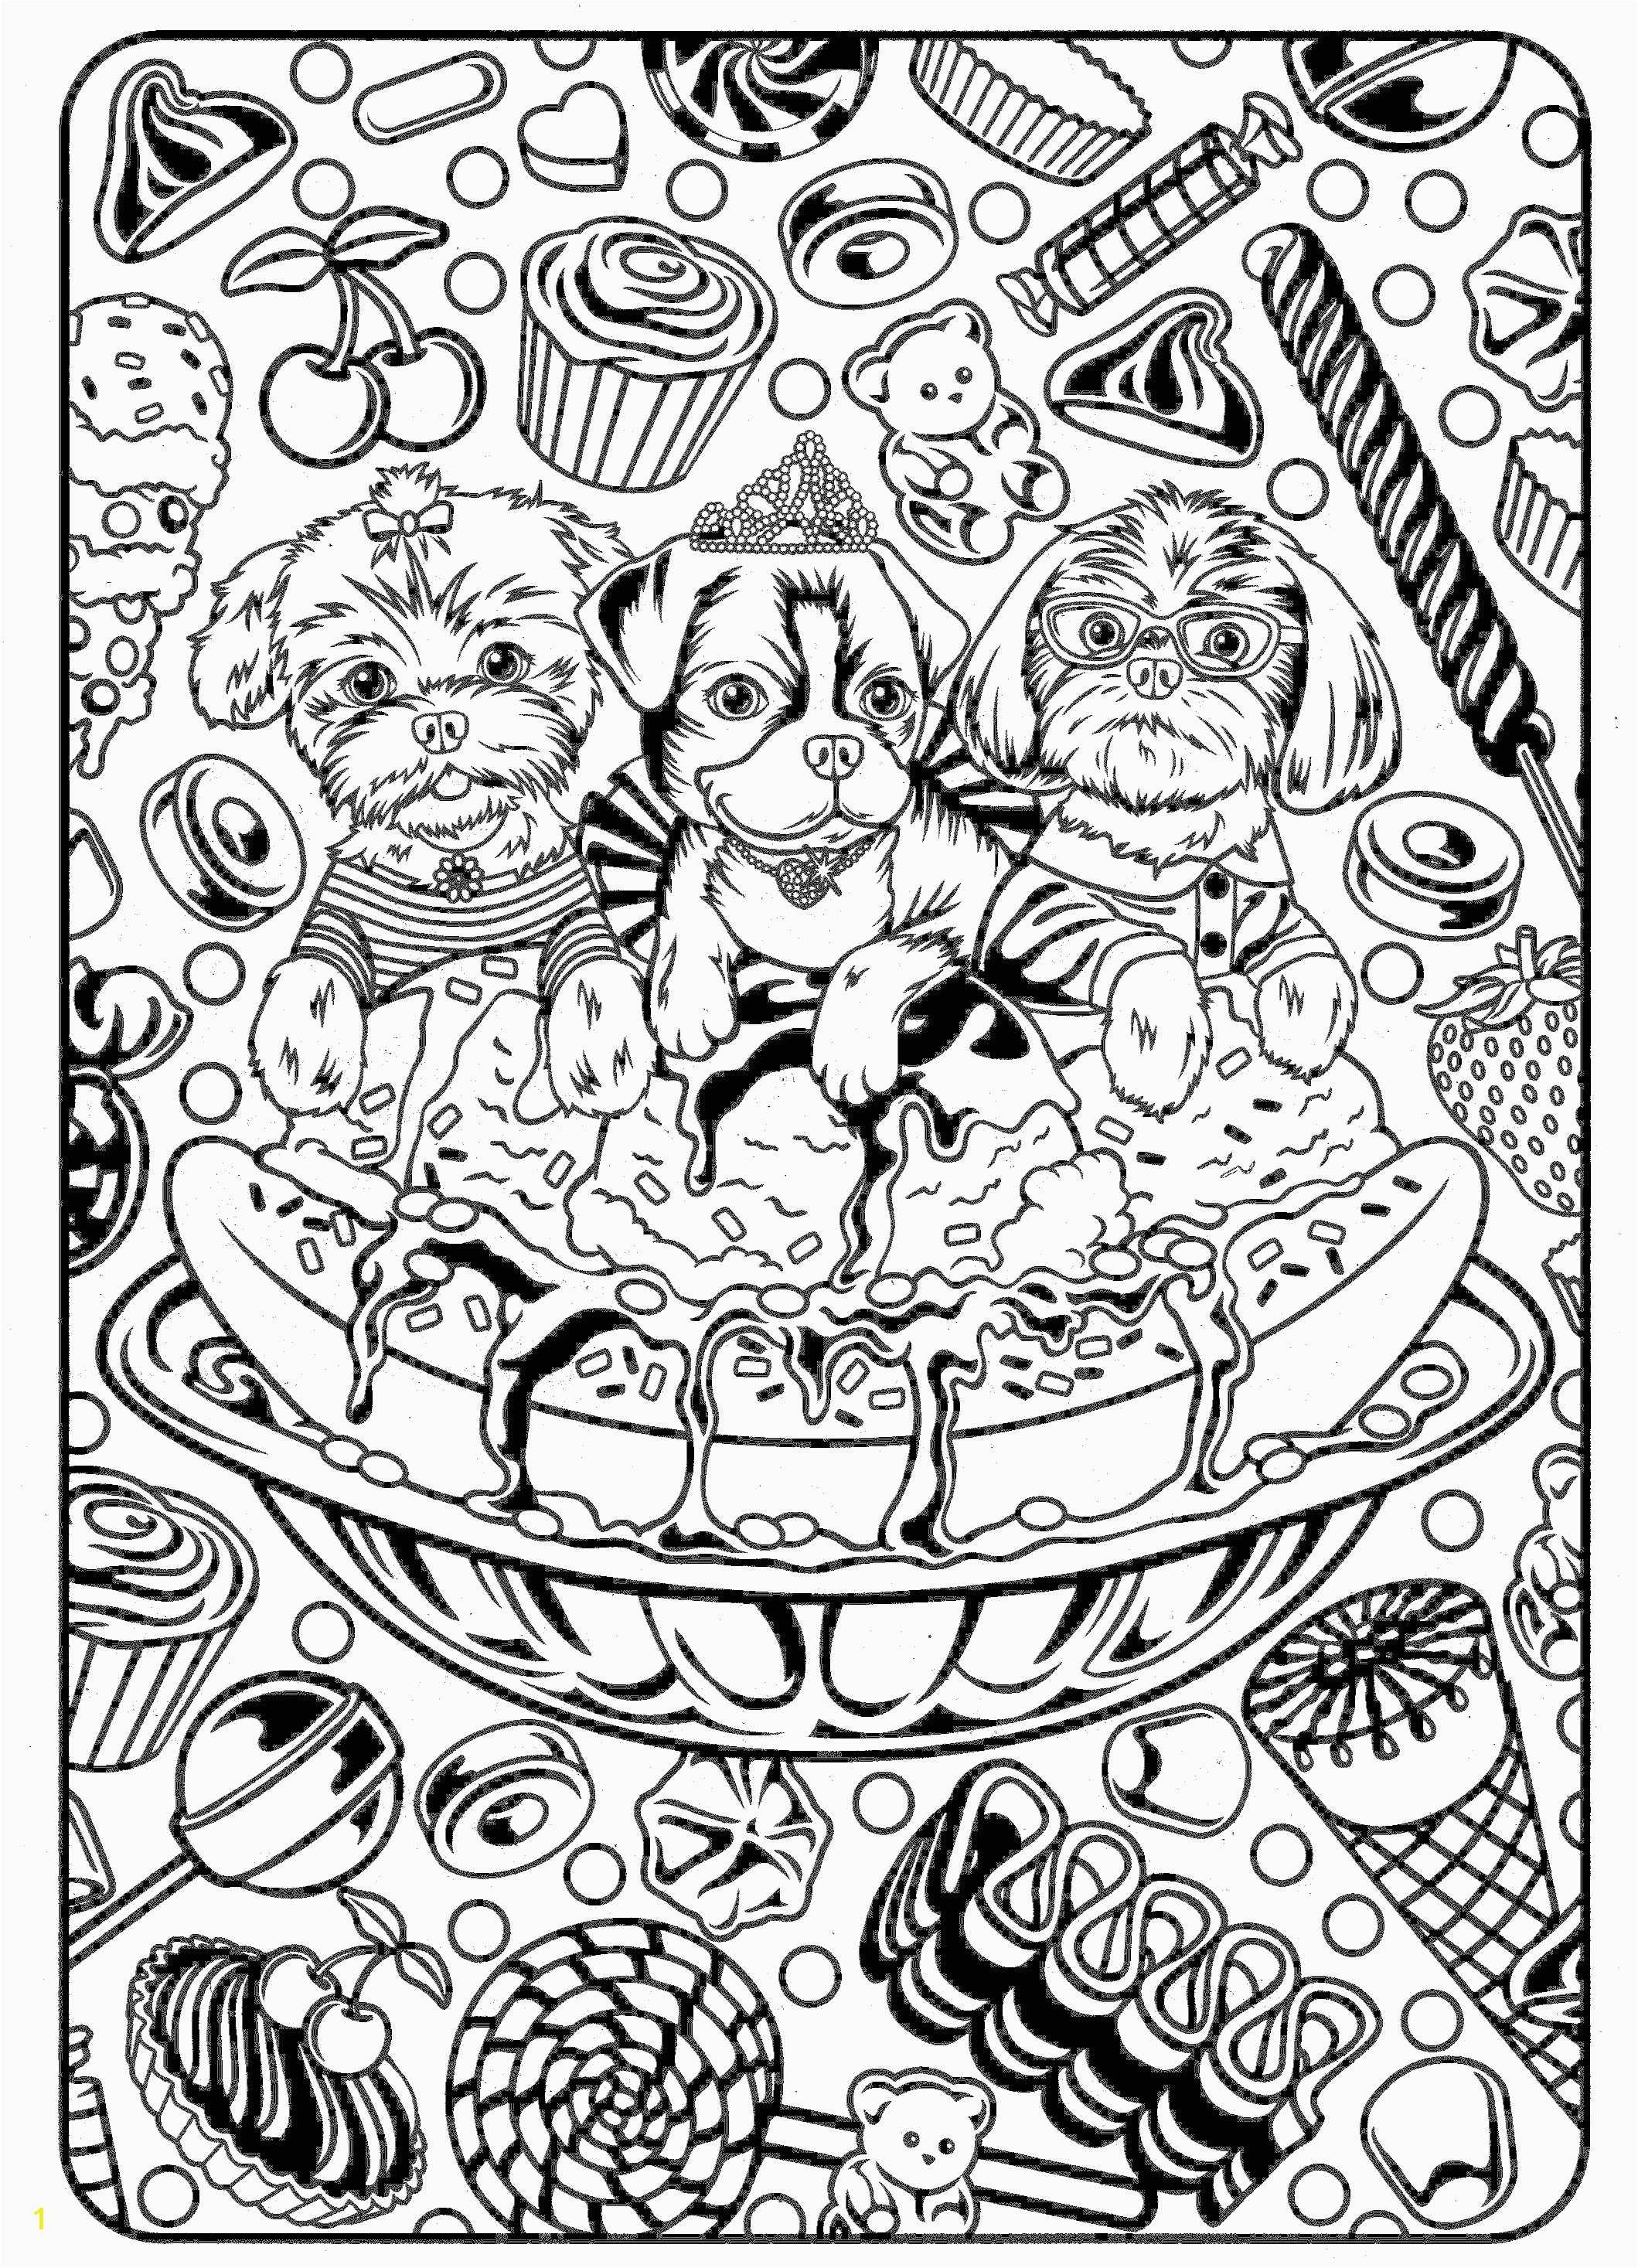 Doctor who Coloring Pages for Adults Adventure Time Coloring Pages Free